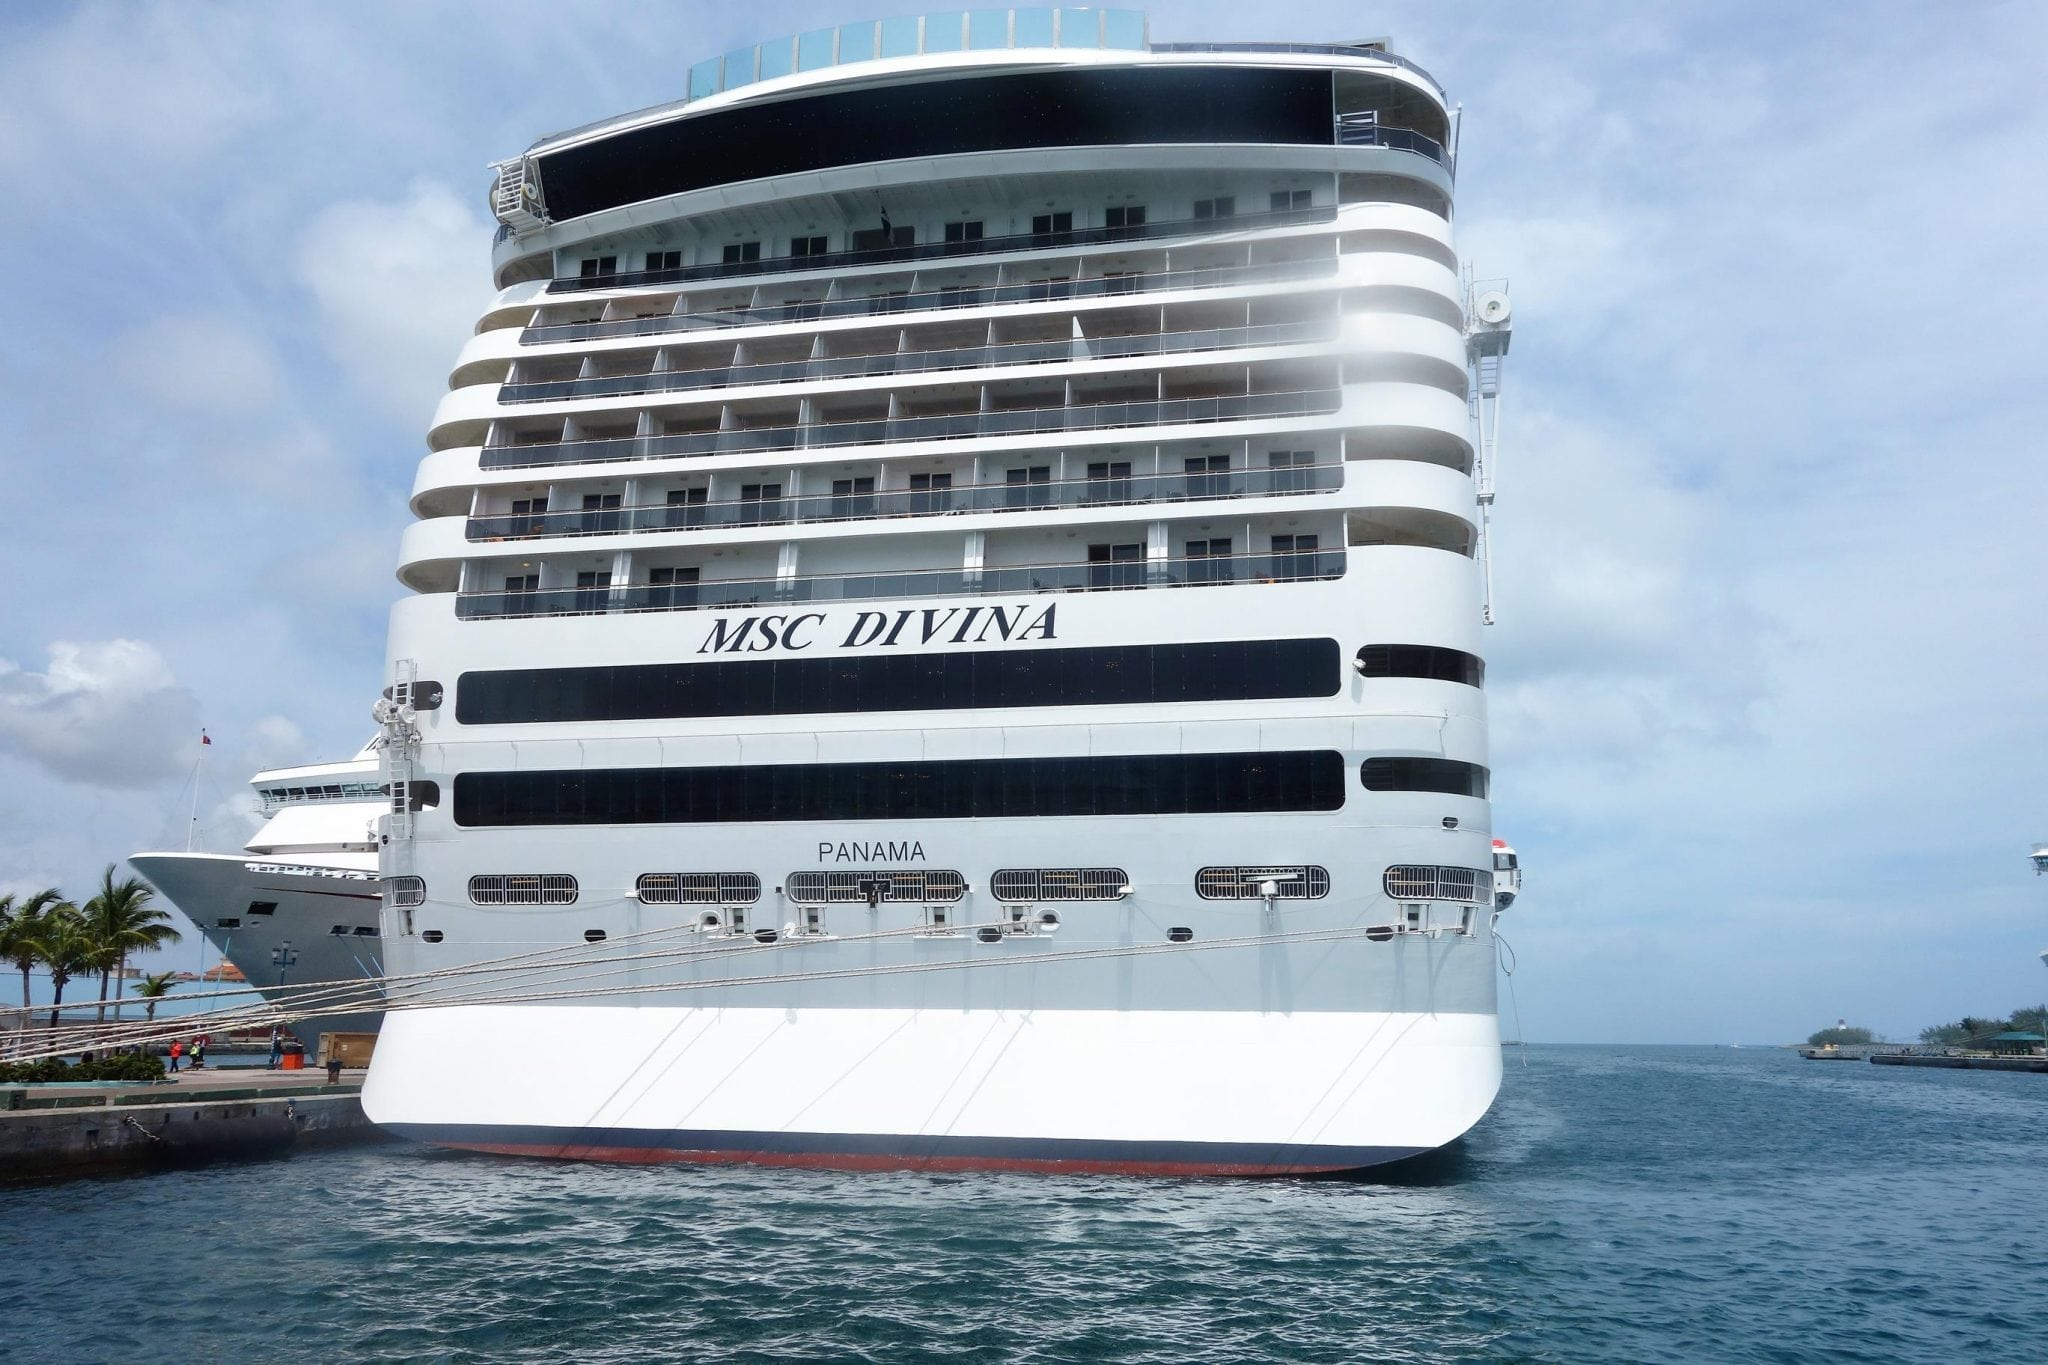 MSC Divina Balcony Room Review